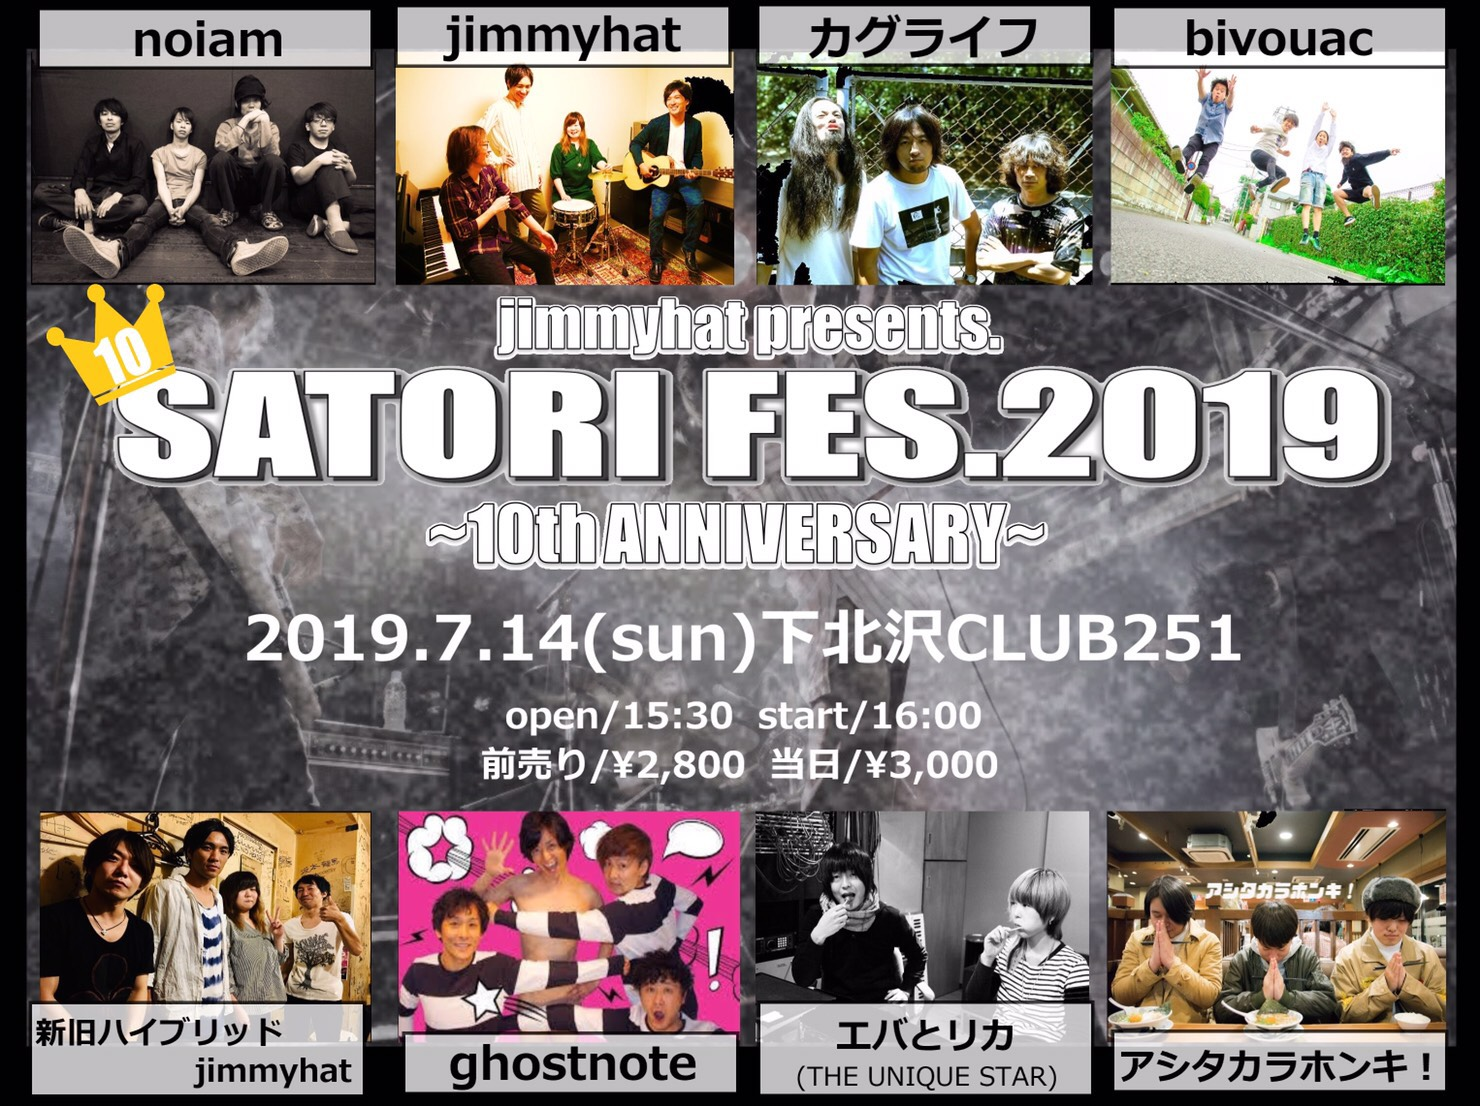 jimmyhat presents SATORI FES. 2019〜10thANNIVERSARY〜